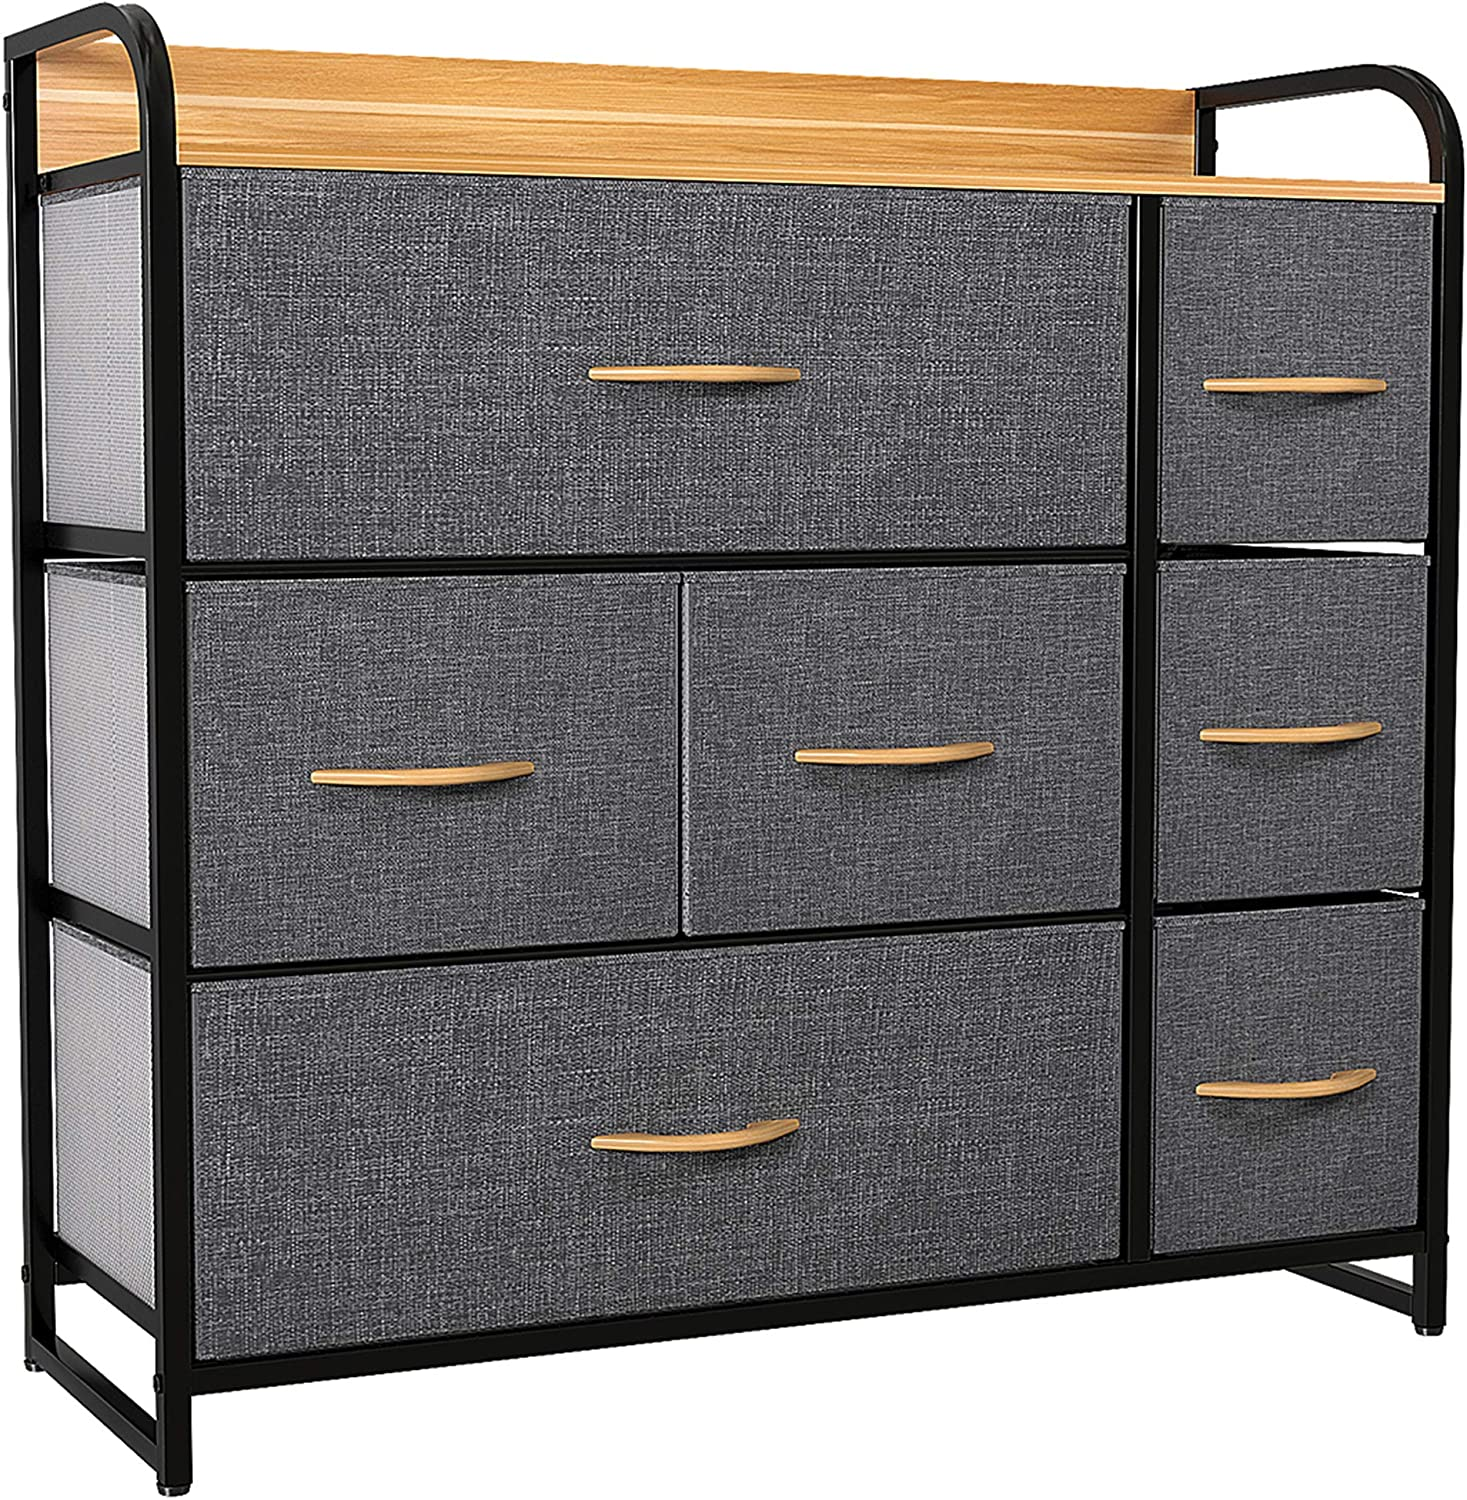 14. YITAHOME closets 7 drawers for Home.